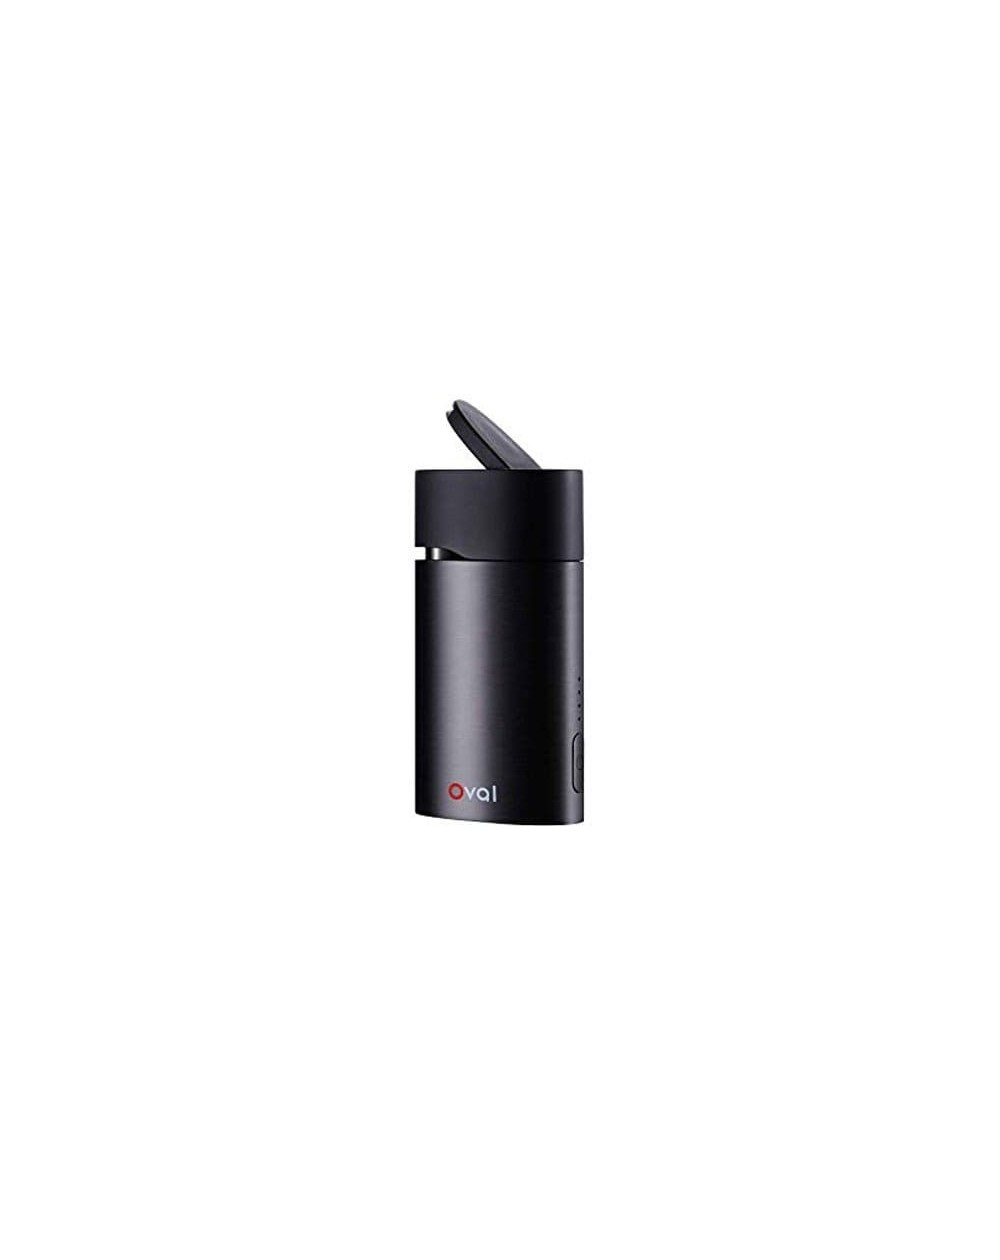 Vaporizer BLK Oval - Kingtons-1